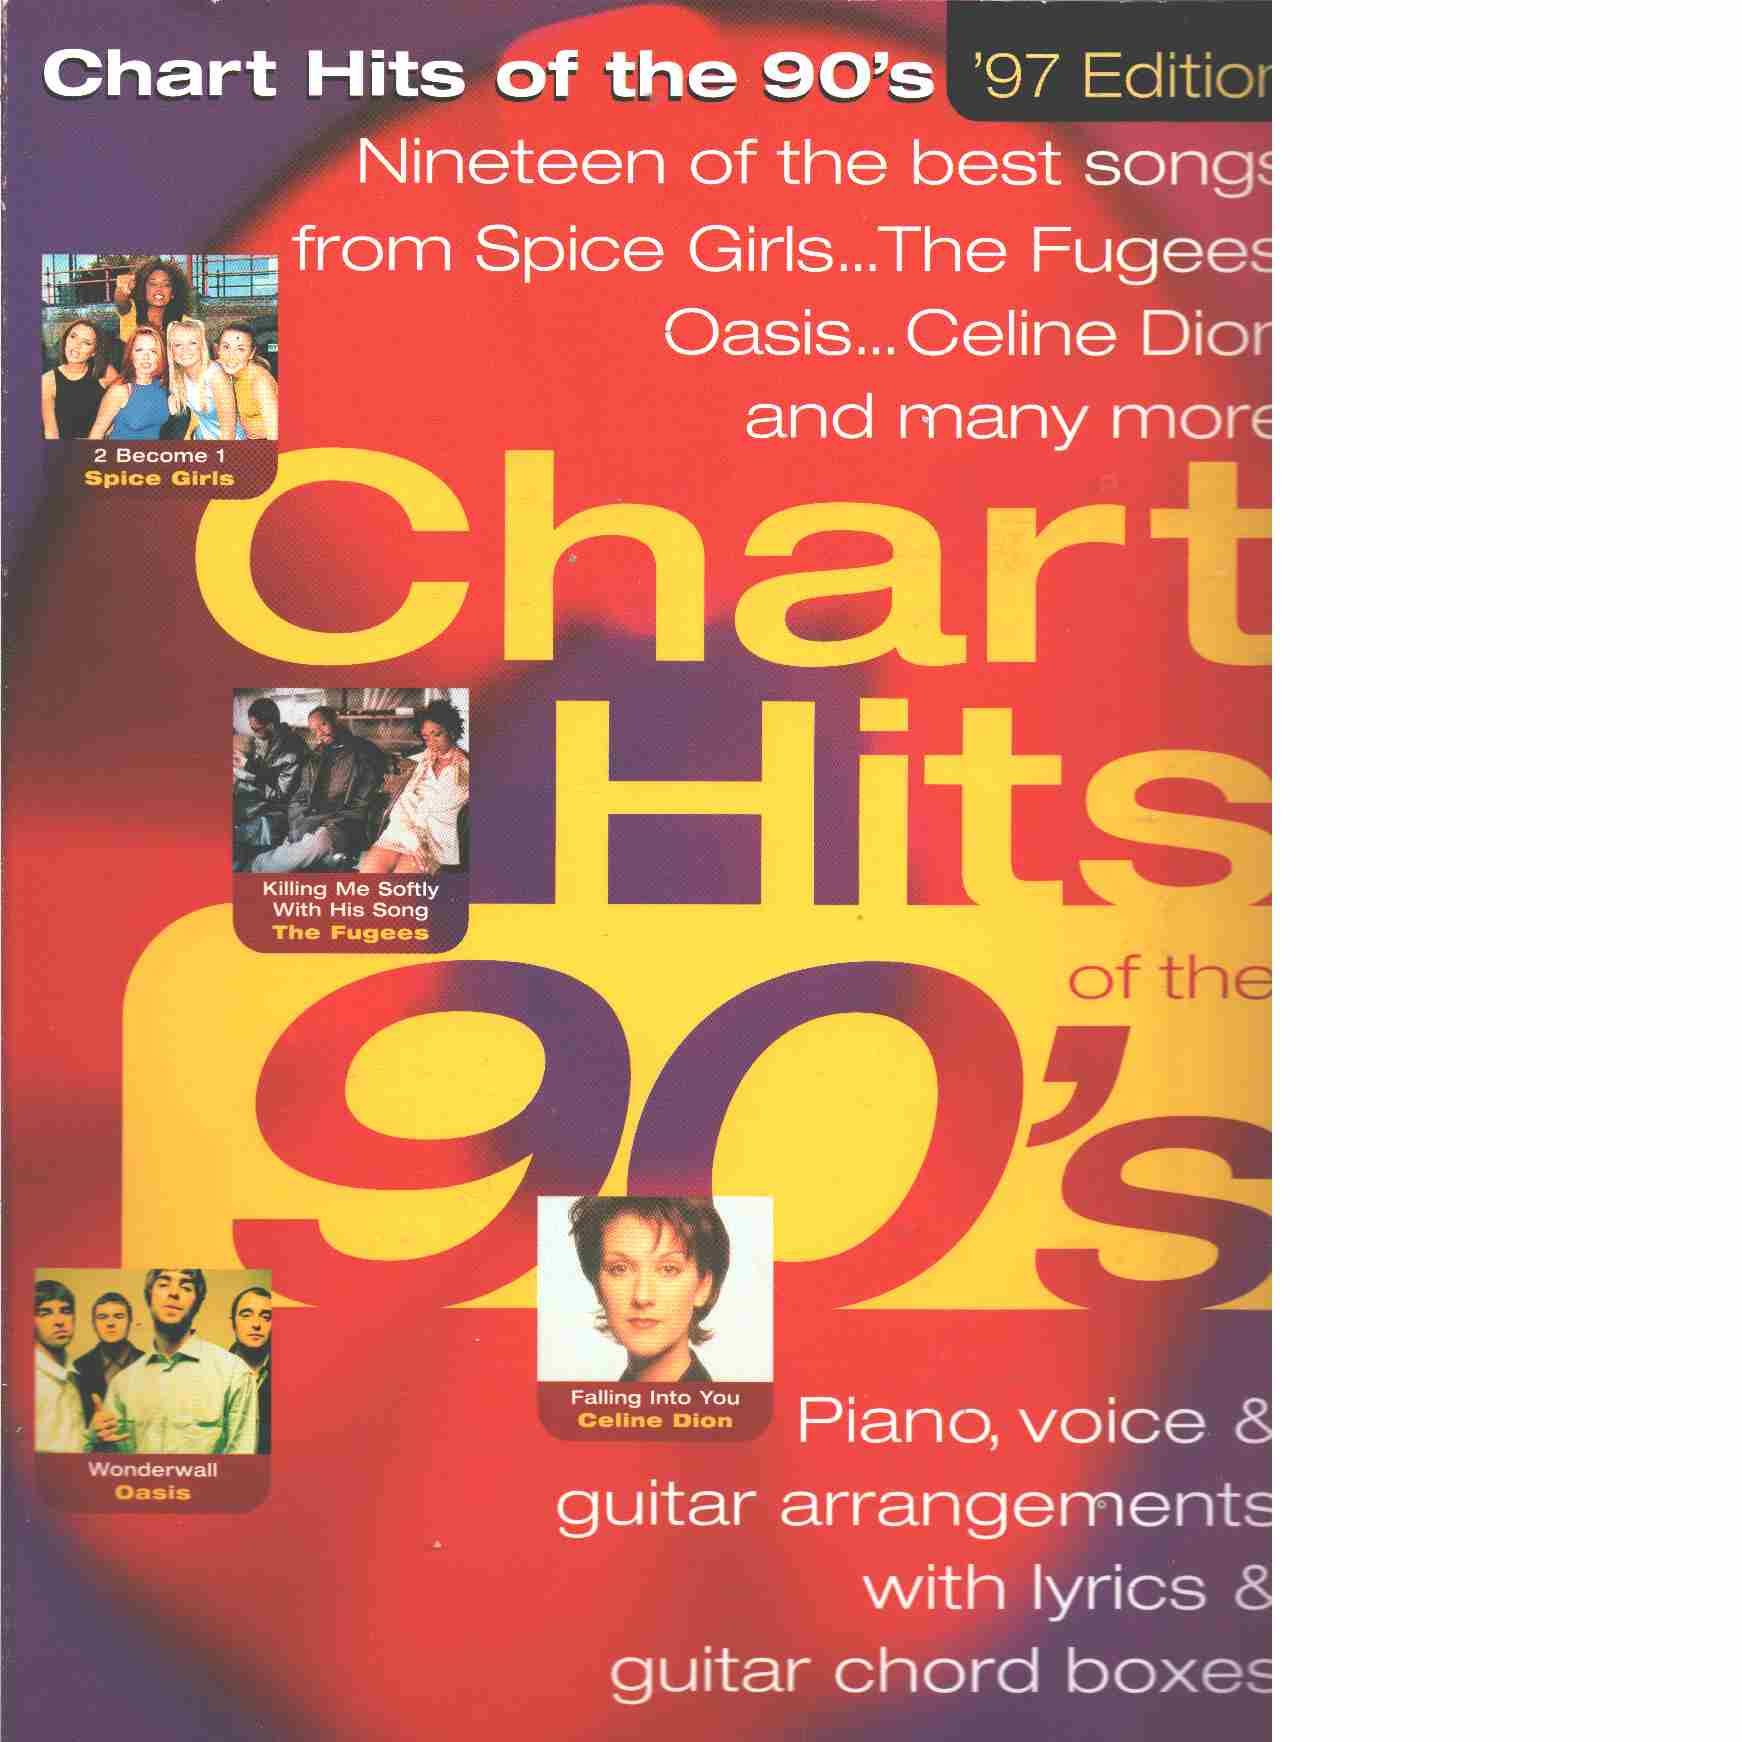 Chart Hits of the 90s - Red.